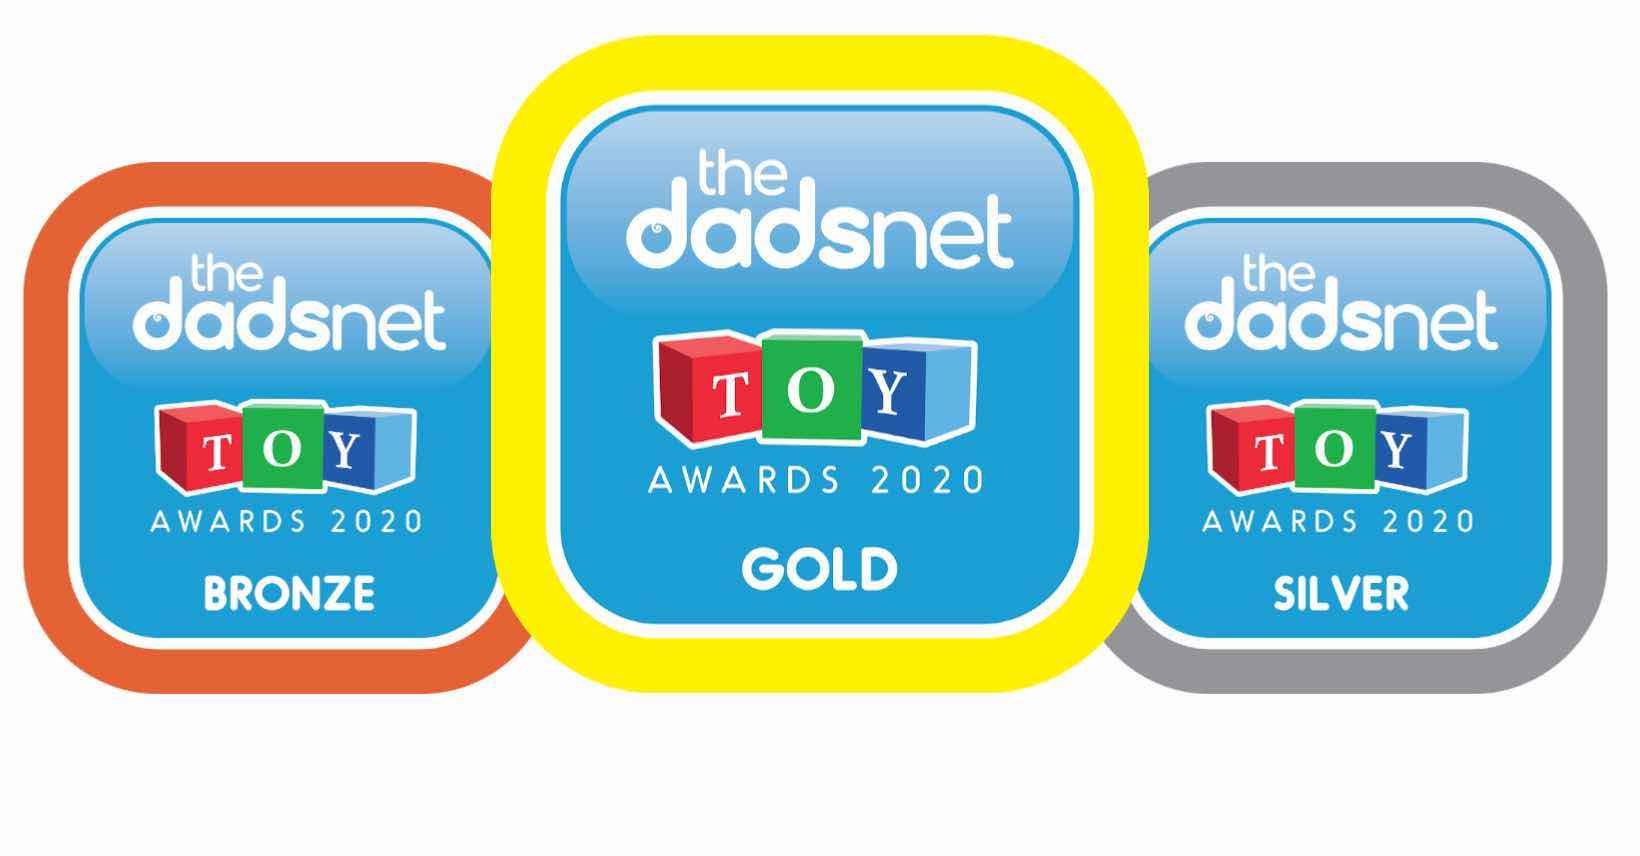 About, Toy Awards 2020 Badges 2%, %